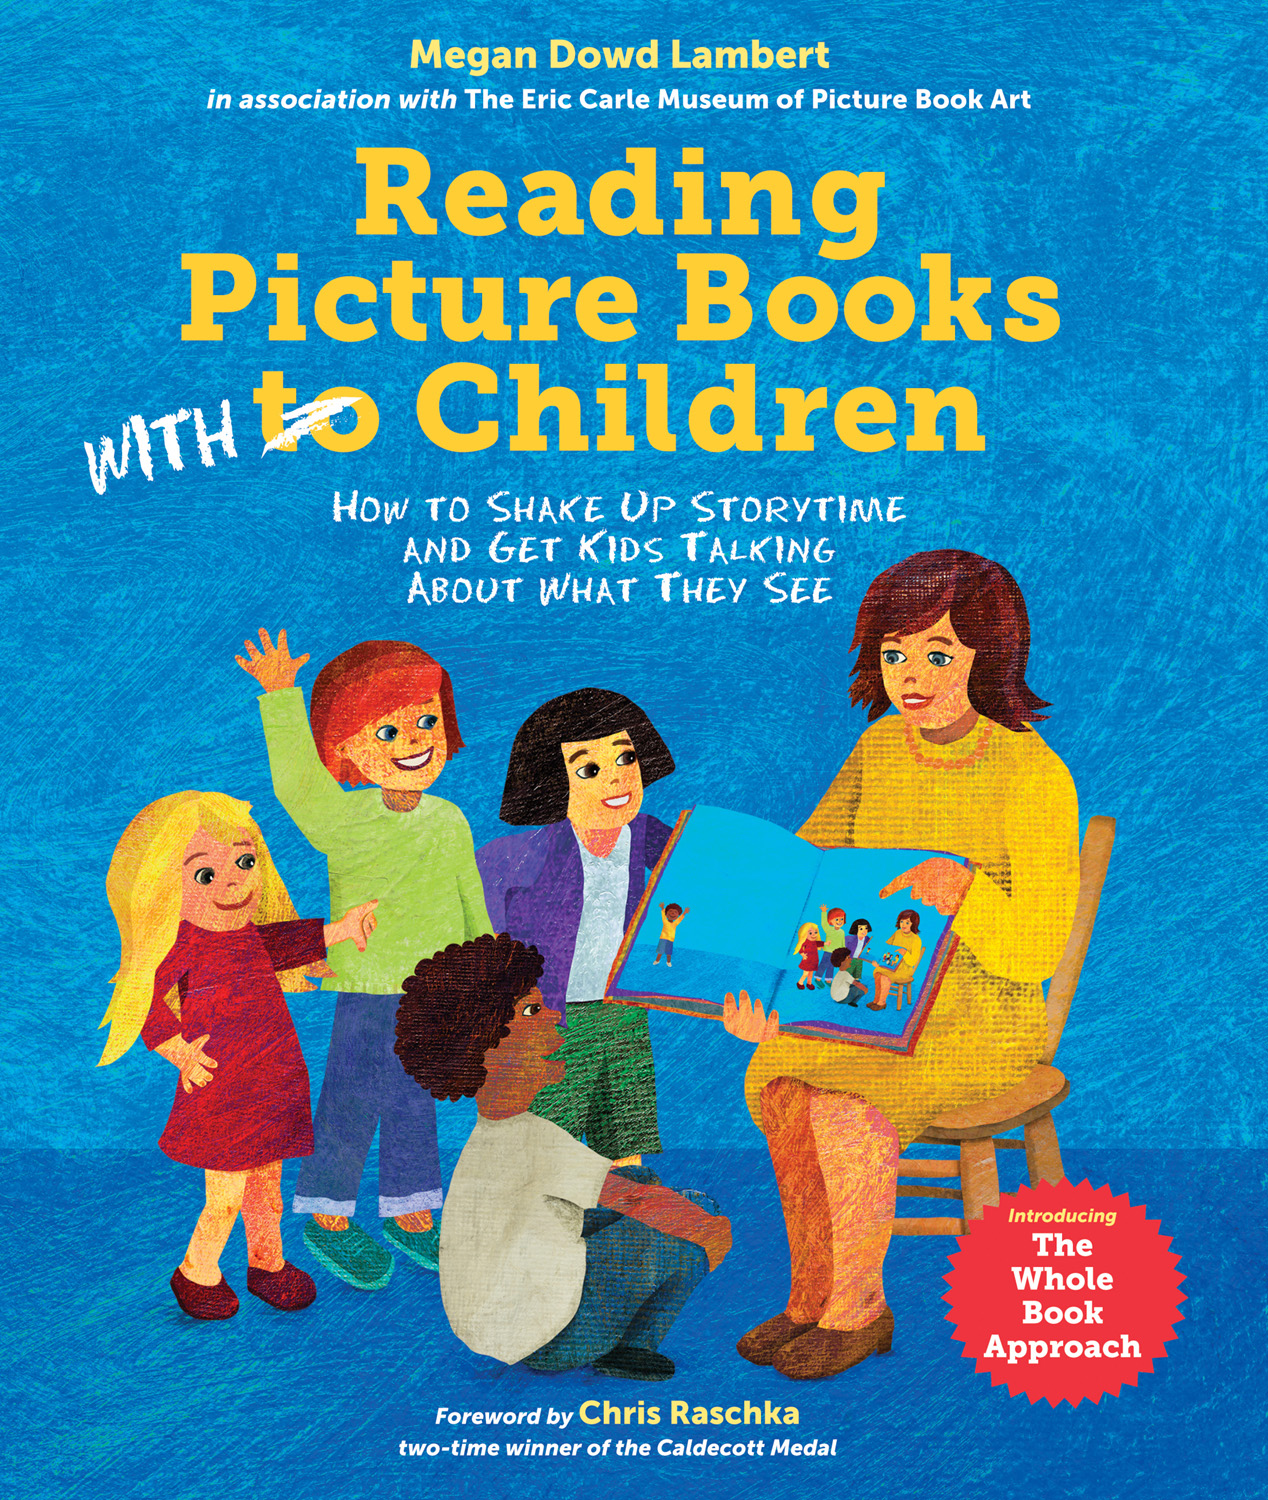 Reading Picture Books With Children Megan Dowd Lambert